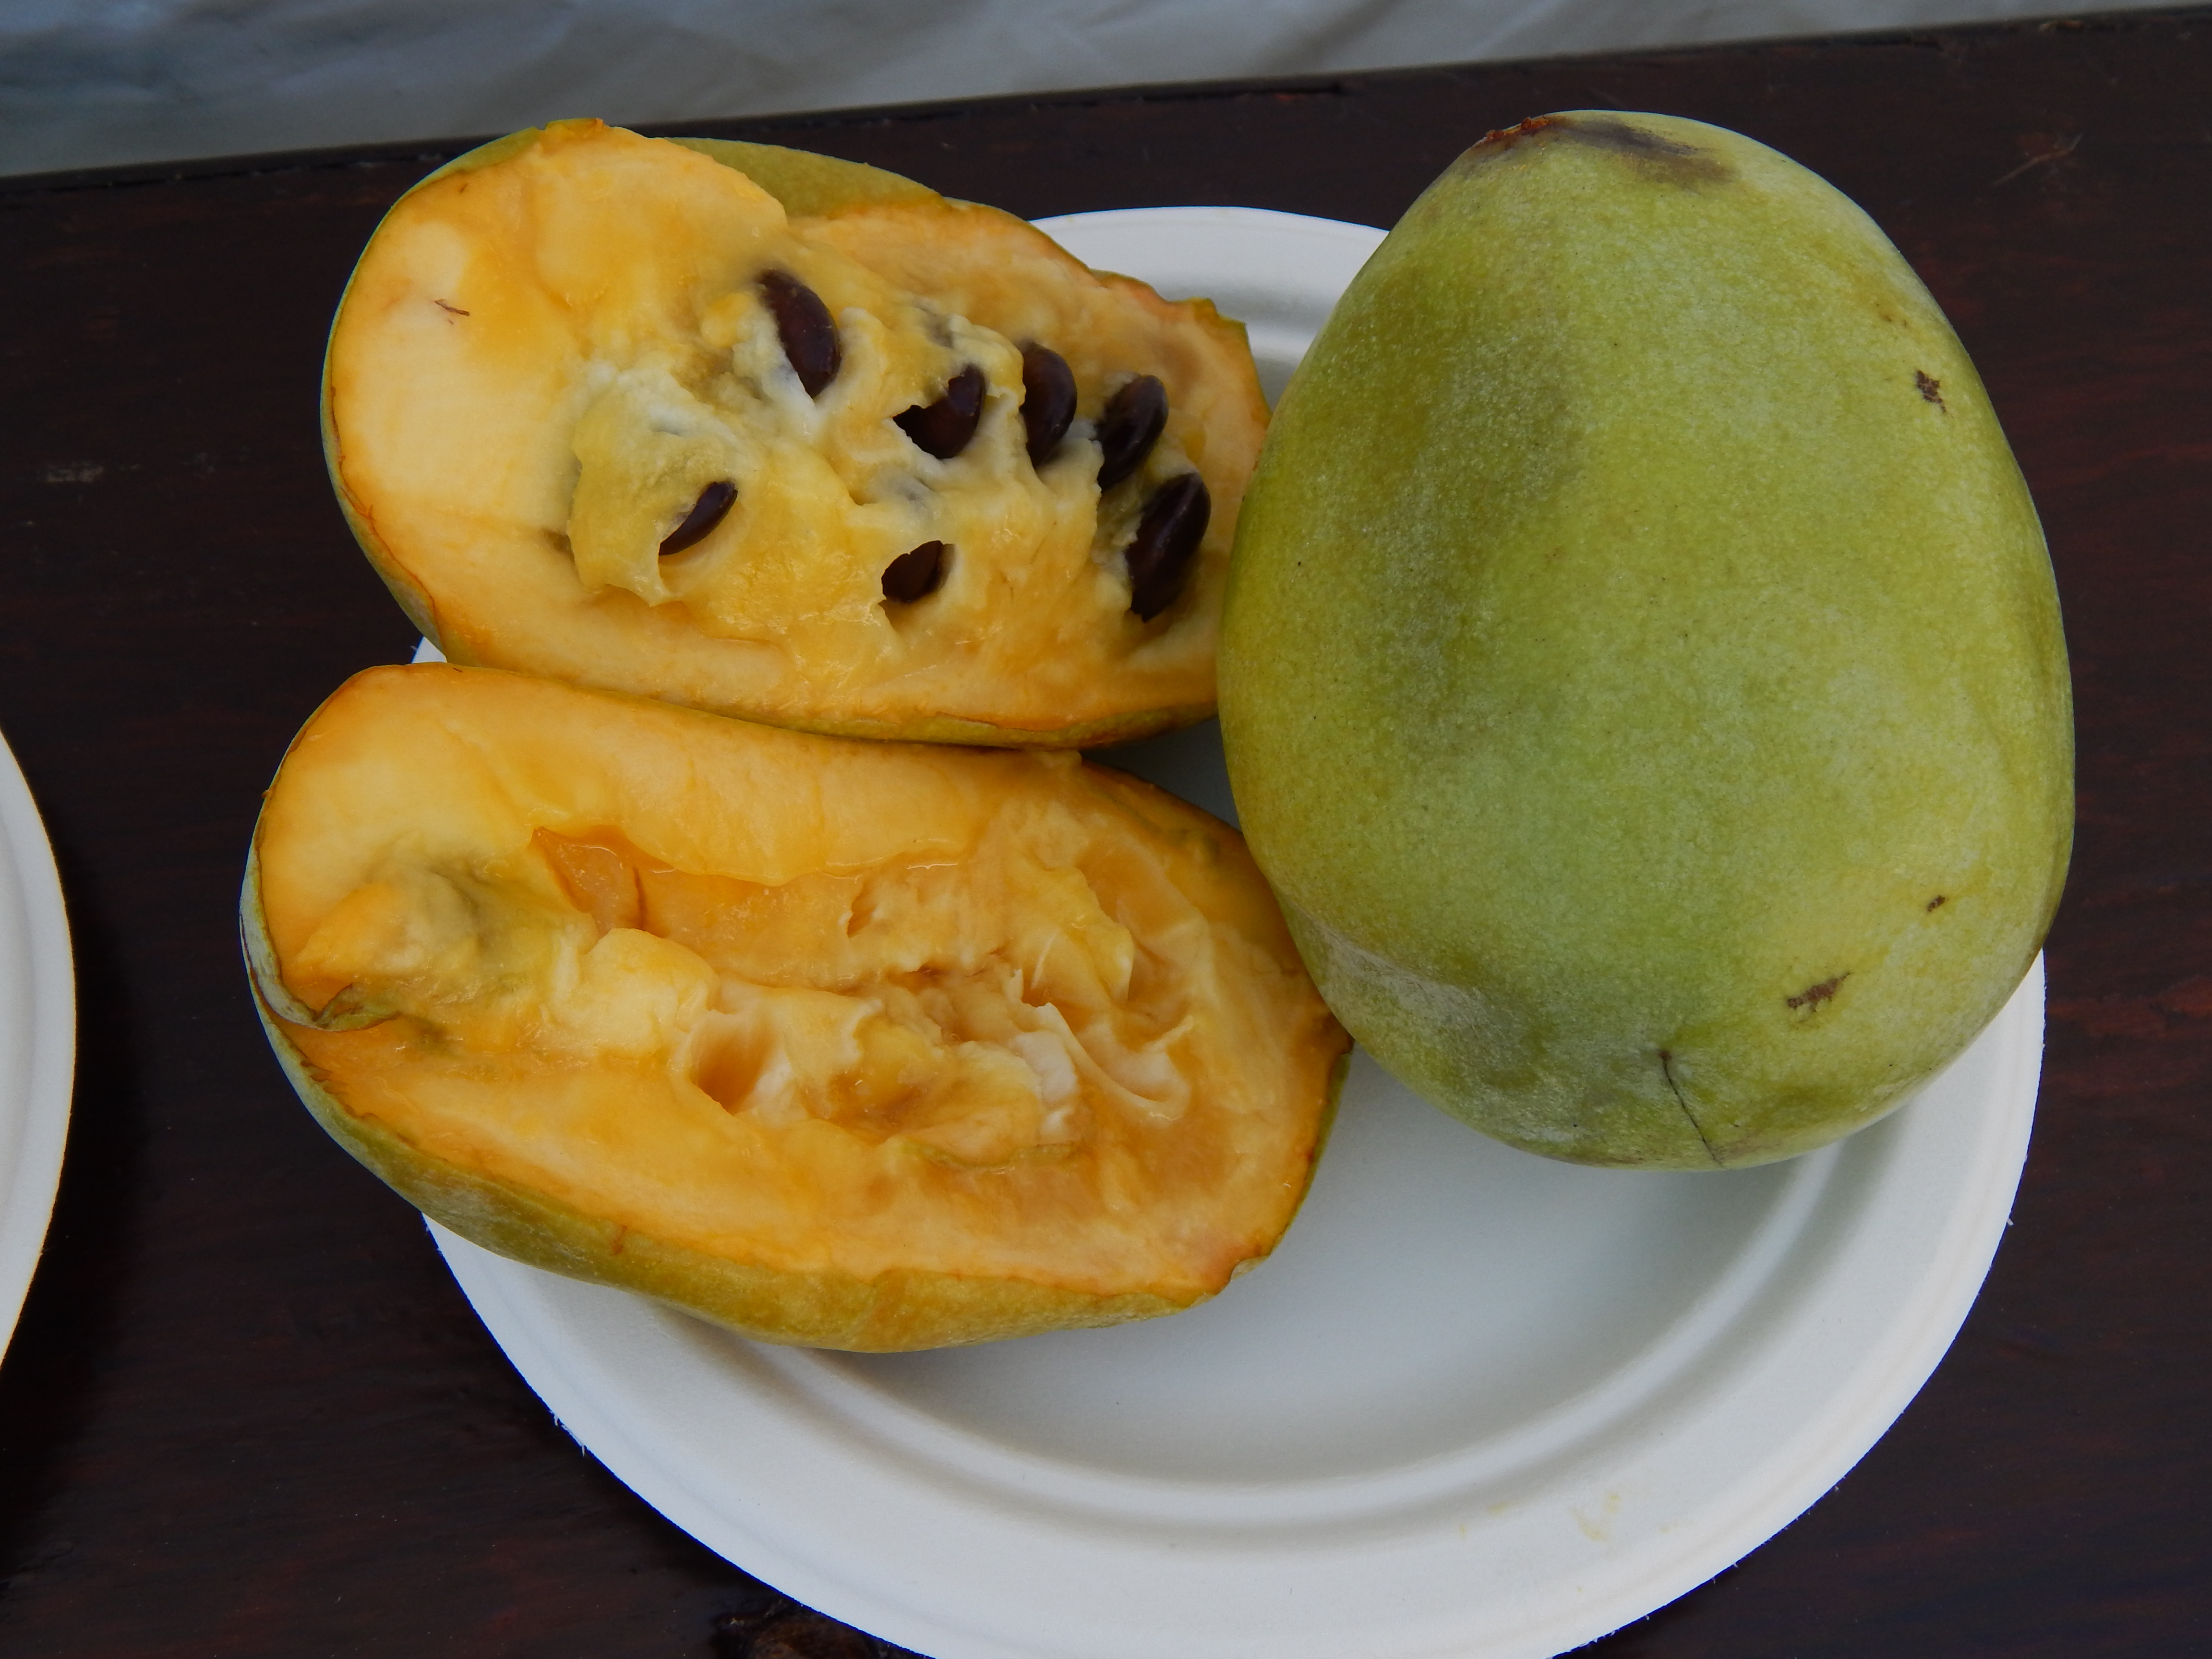 On seasonal cycles, paw paws, and one year of Farming the